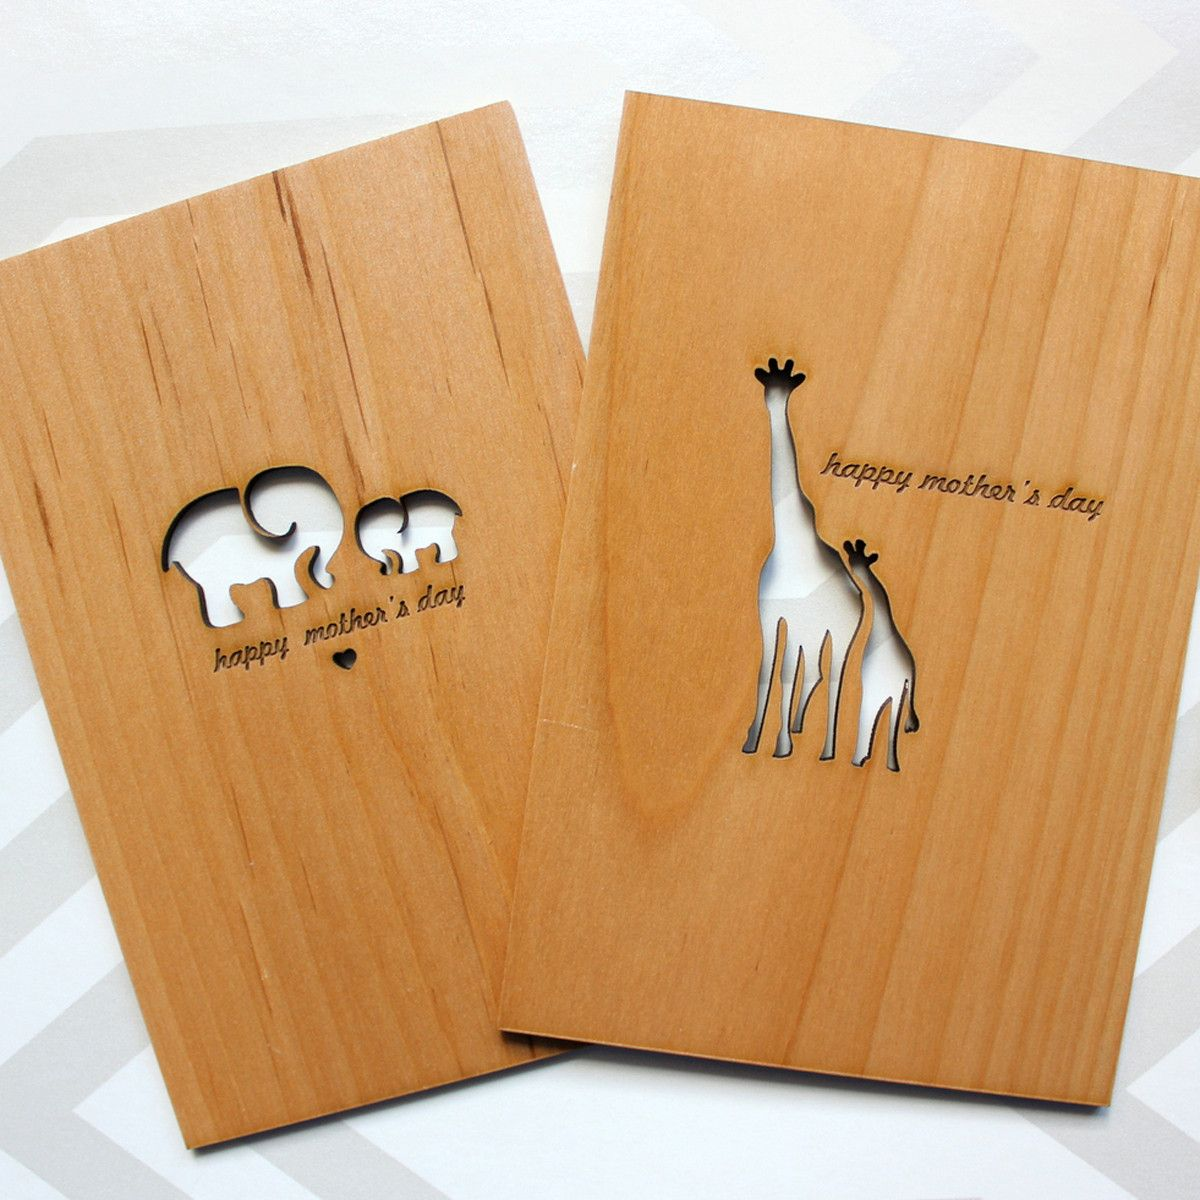 Certified Sustainable Wood Laser Engraved Cards Home